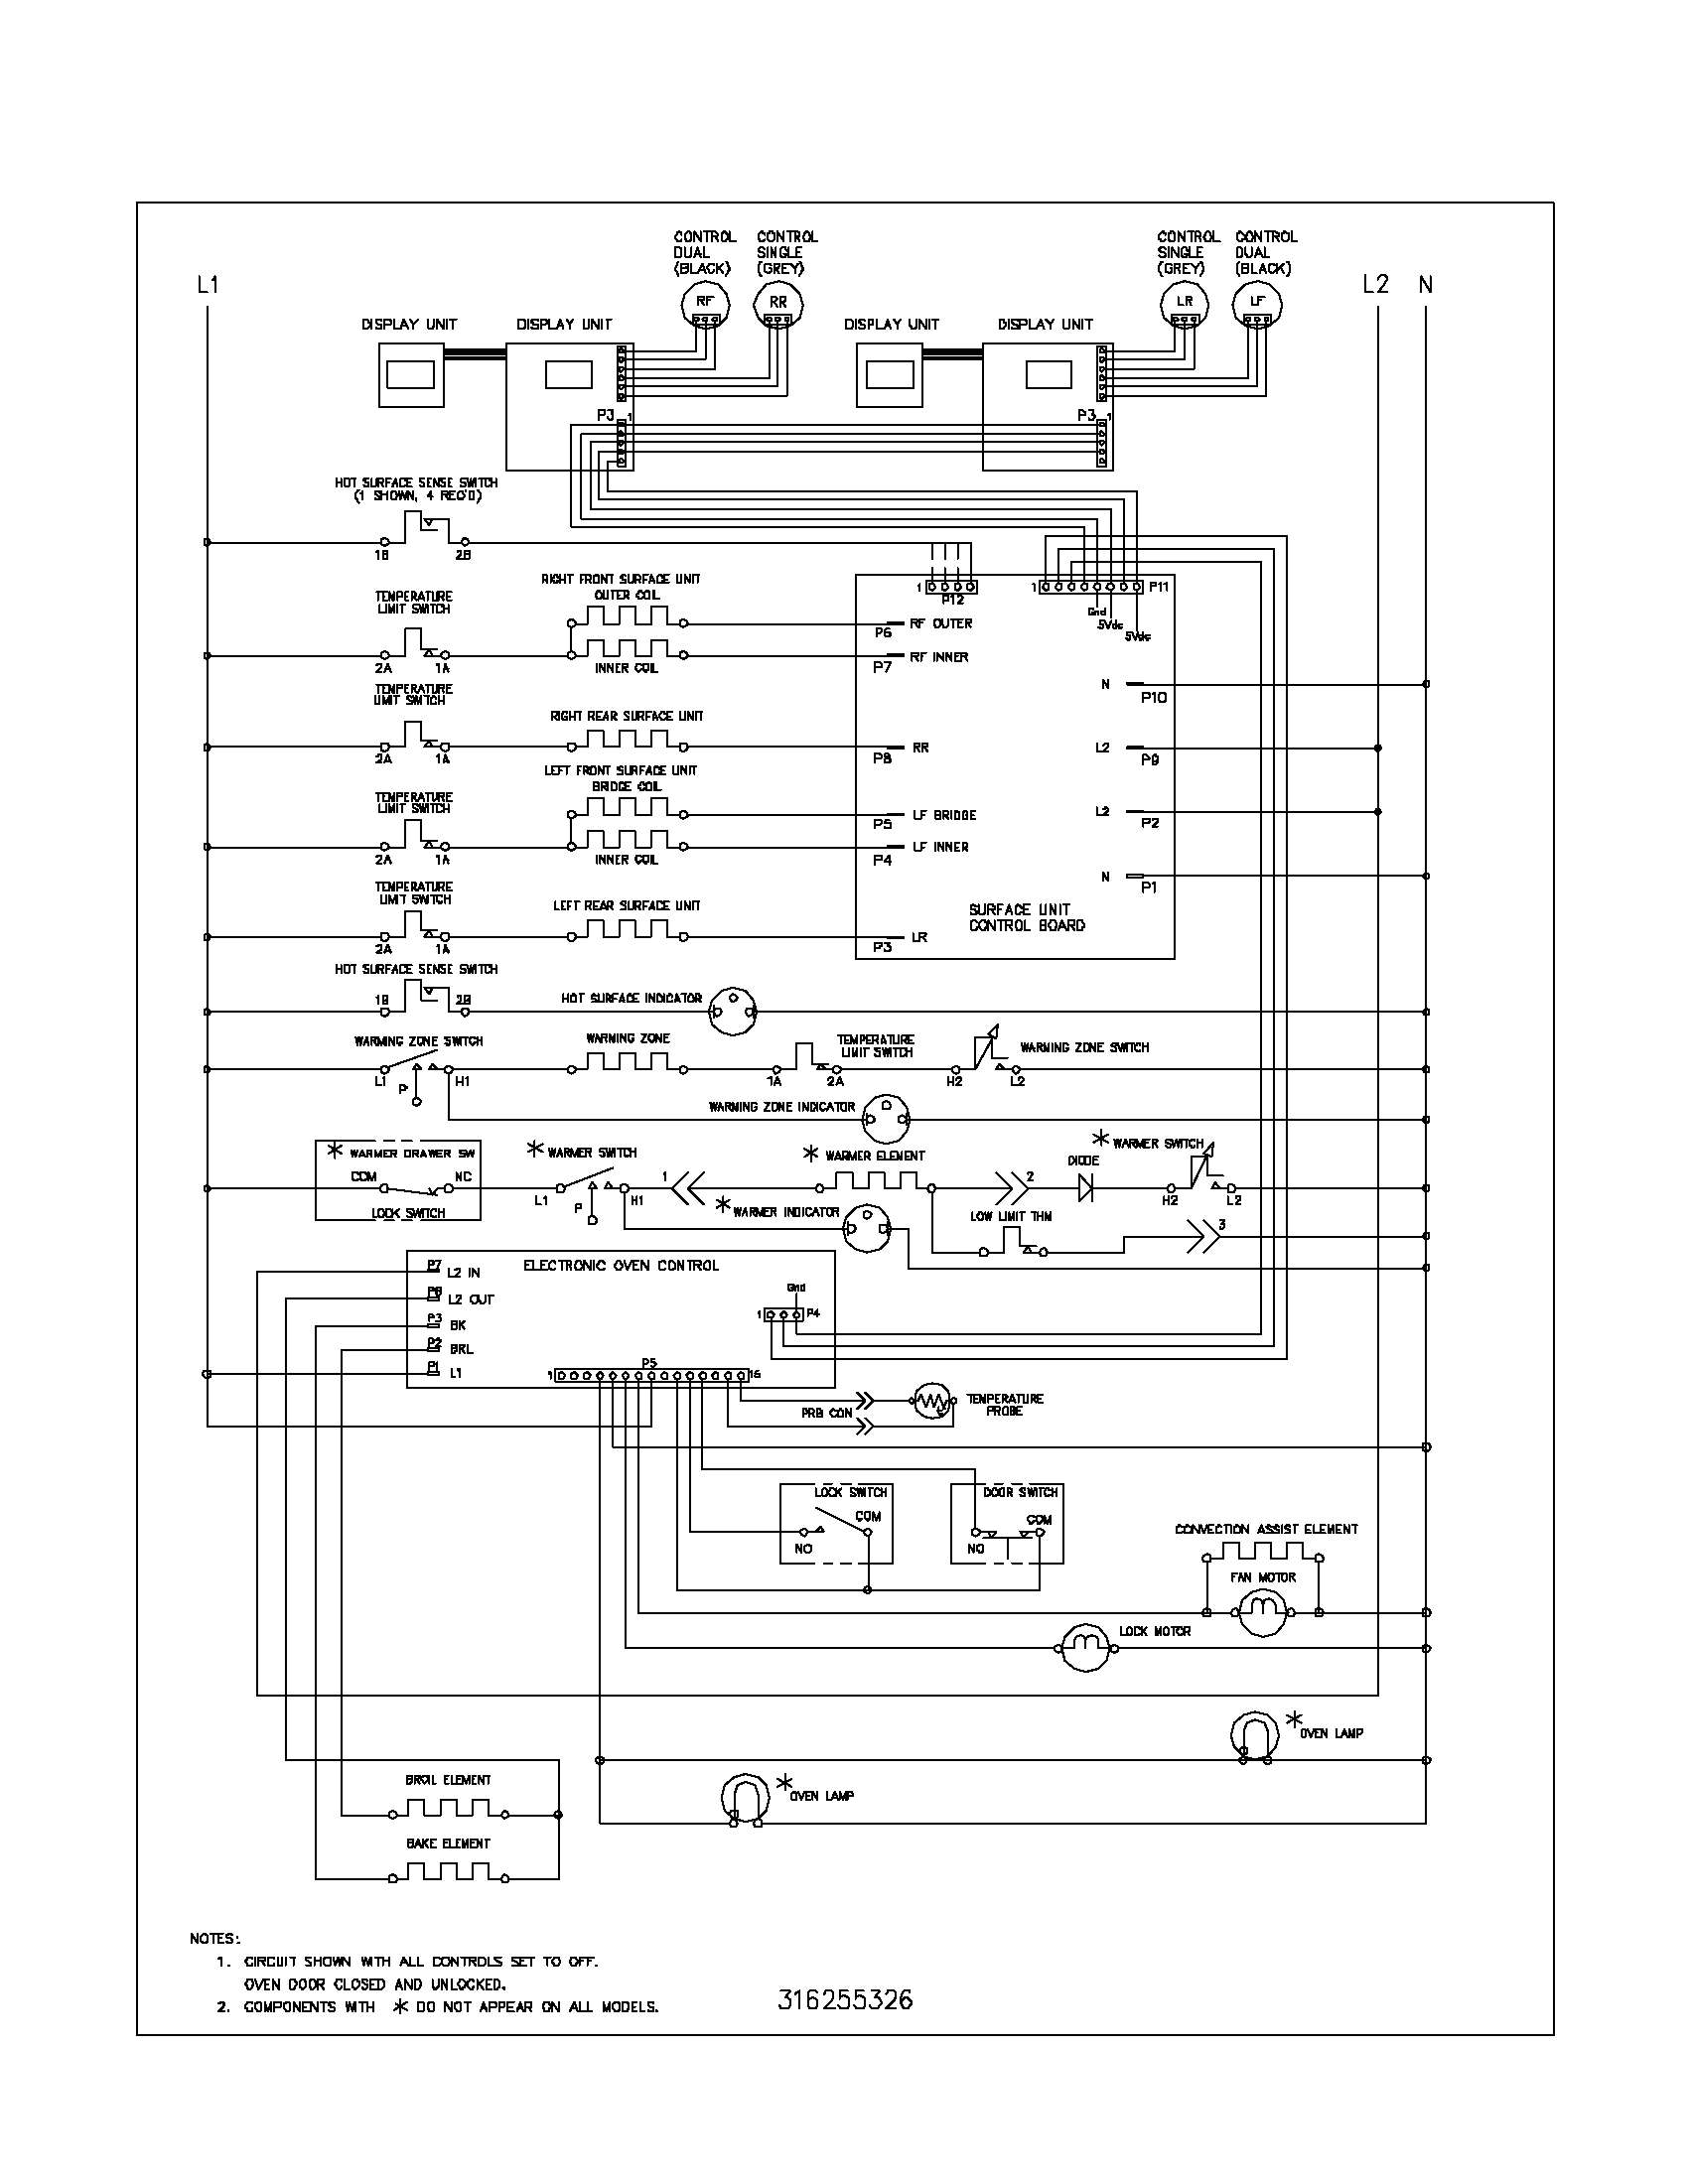 Tempstar Condenser Wiring Diagram. . Wiring Diagram on climatrol wiring diagram, heat controller wiring diagram, rheem air handler wiring diagram, viking wiring diagram, panasonic wiring diagram, johnson controls wiring diagram, sears wiring diagram, payne wiring diagram, broan wiring diagram, concord wiring diagram, old furnace wiring diagram, goettl wiring diagram, snyder general wiring diagram, crosley wiring diagram, estate wiring diagram, columbia wiring diagram, roper wiring diagram, evcon wiring diagram, marvair wiring diagram, centurion wiring diagram,